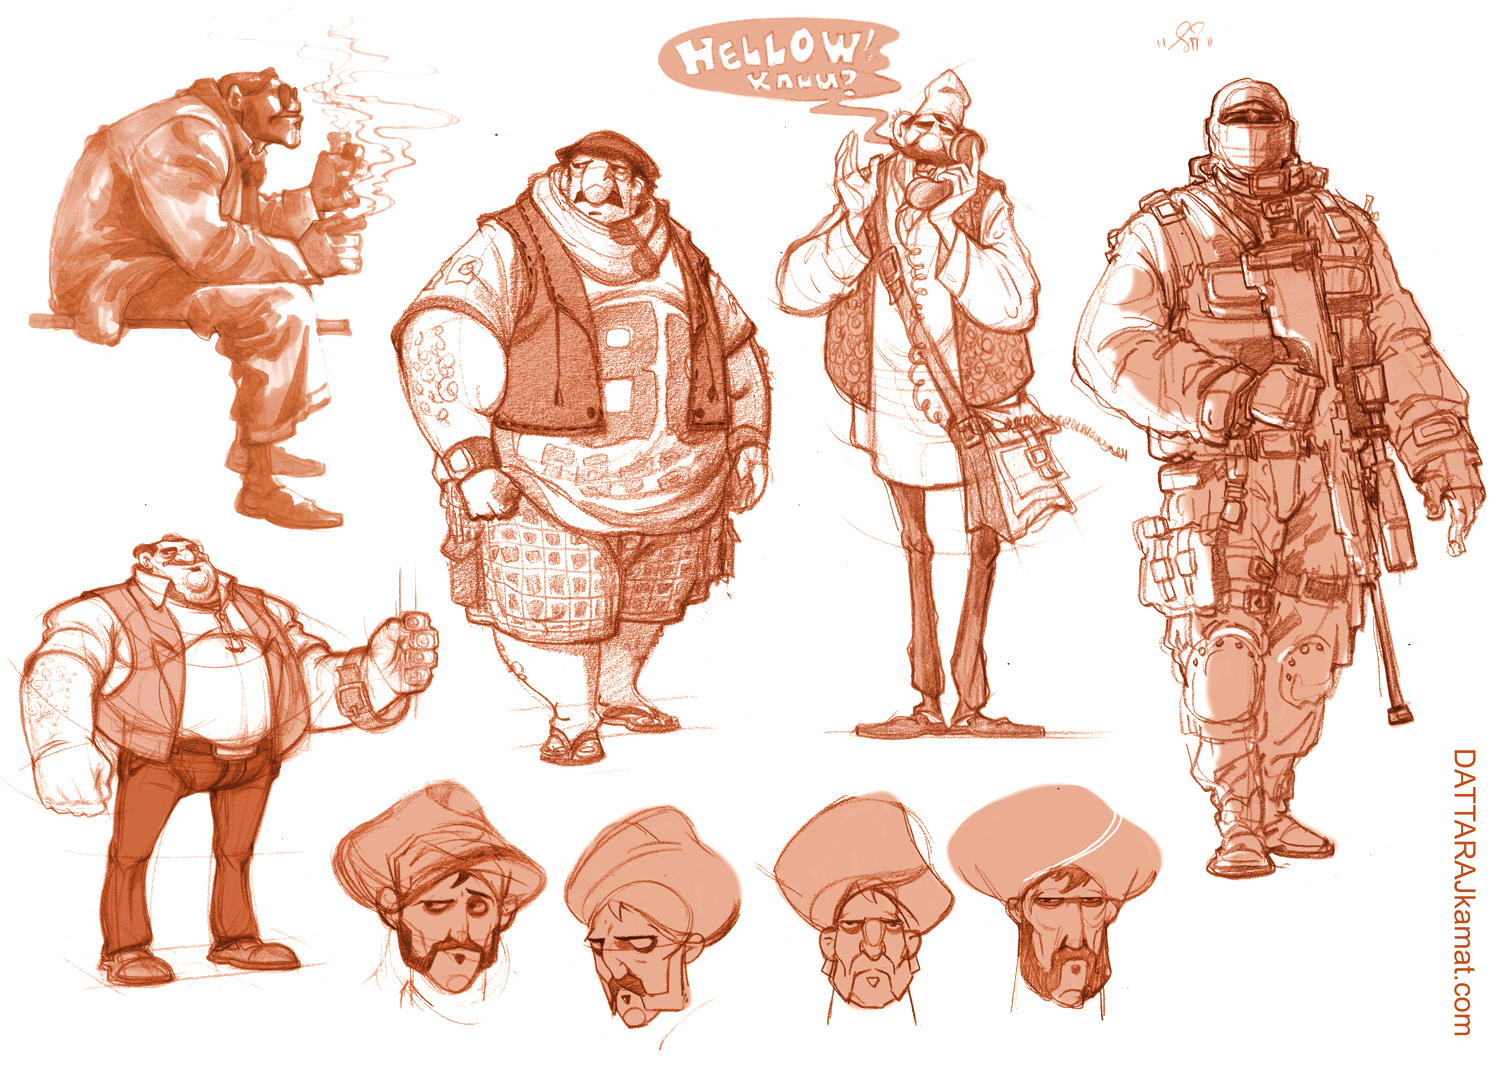 Character Design Artwork : Dattaraj kamat animation art character designs